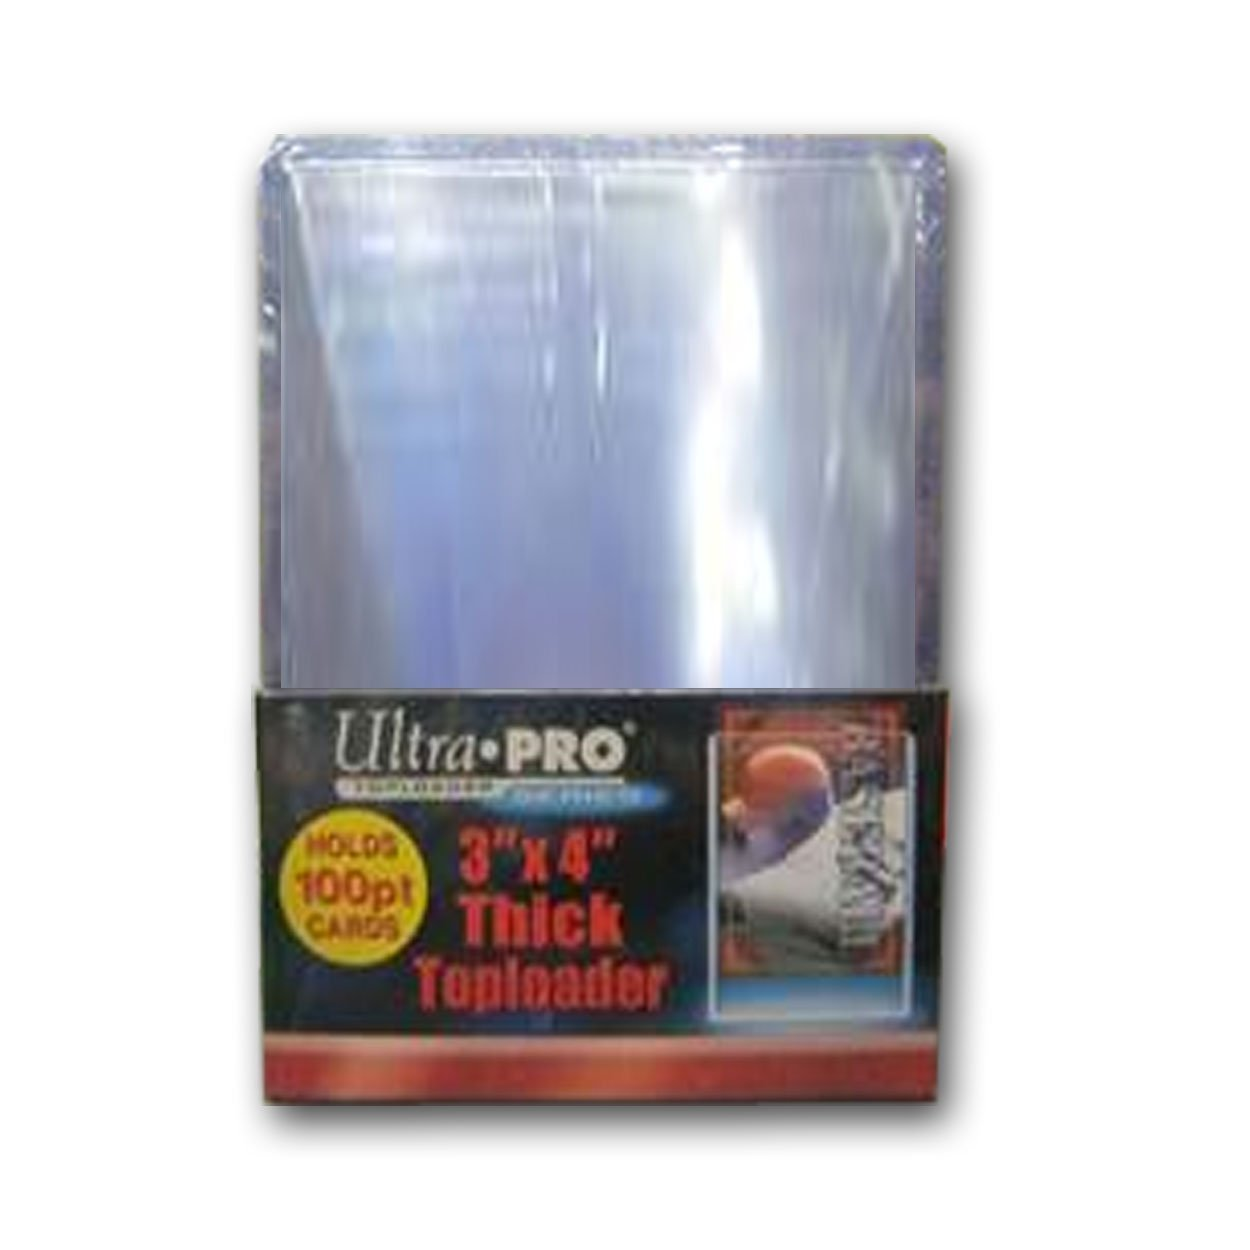 5 PACKS OF 25 3X4 ULTRA PRO SUPER THICK 100pt CARD TOPLOADERS